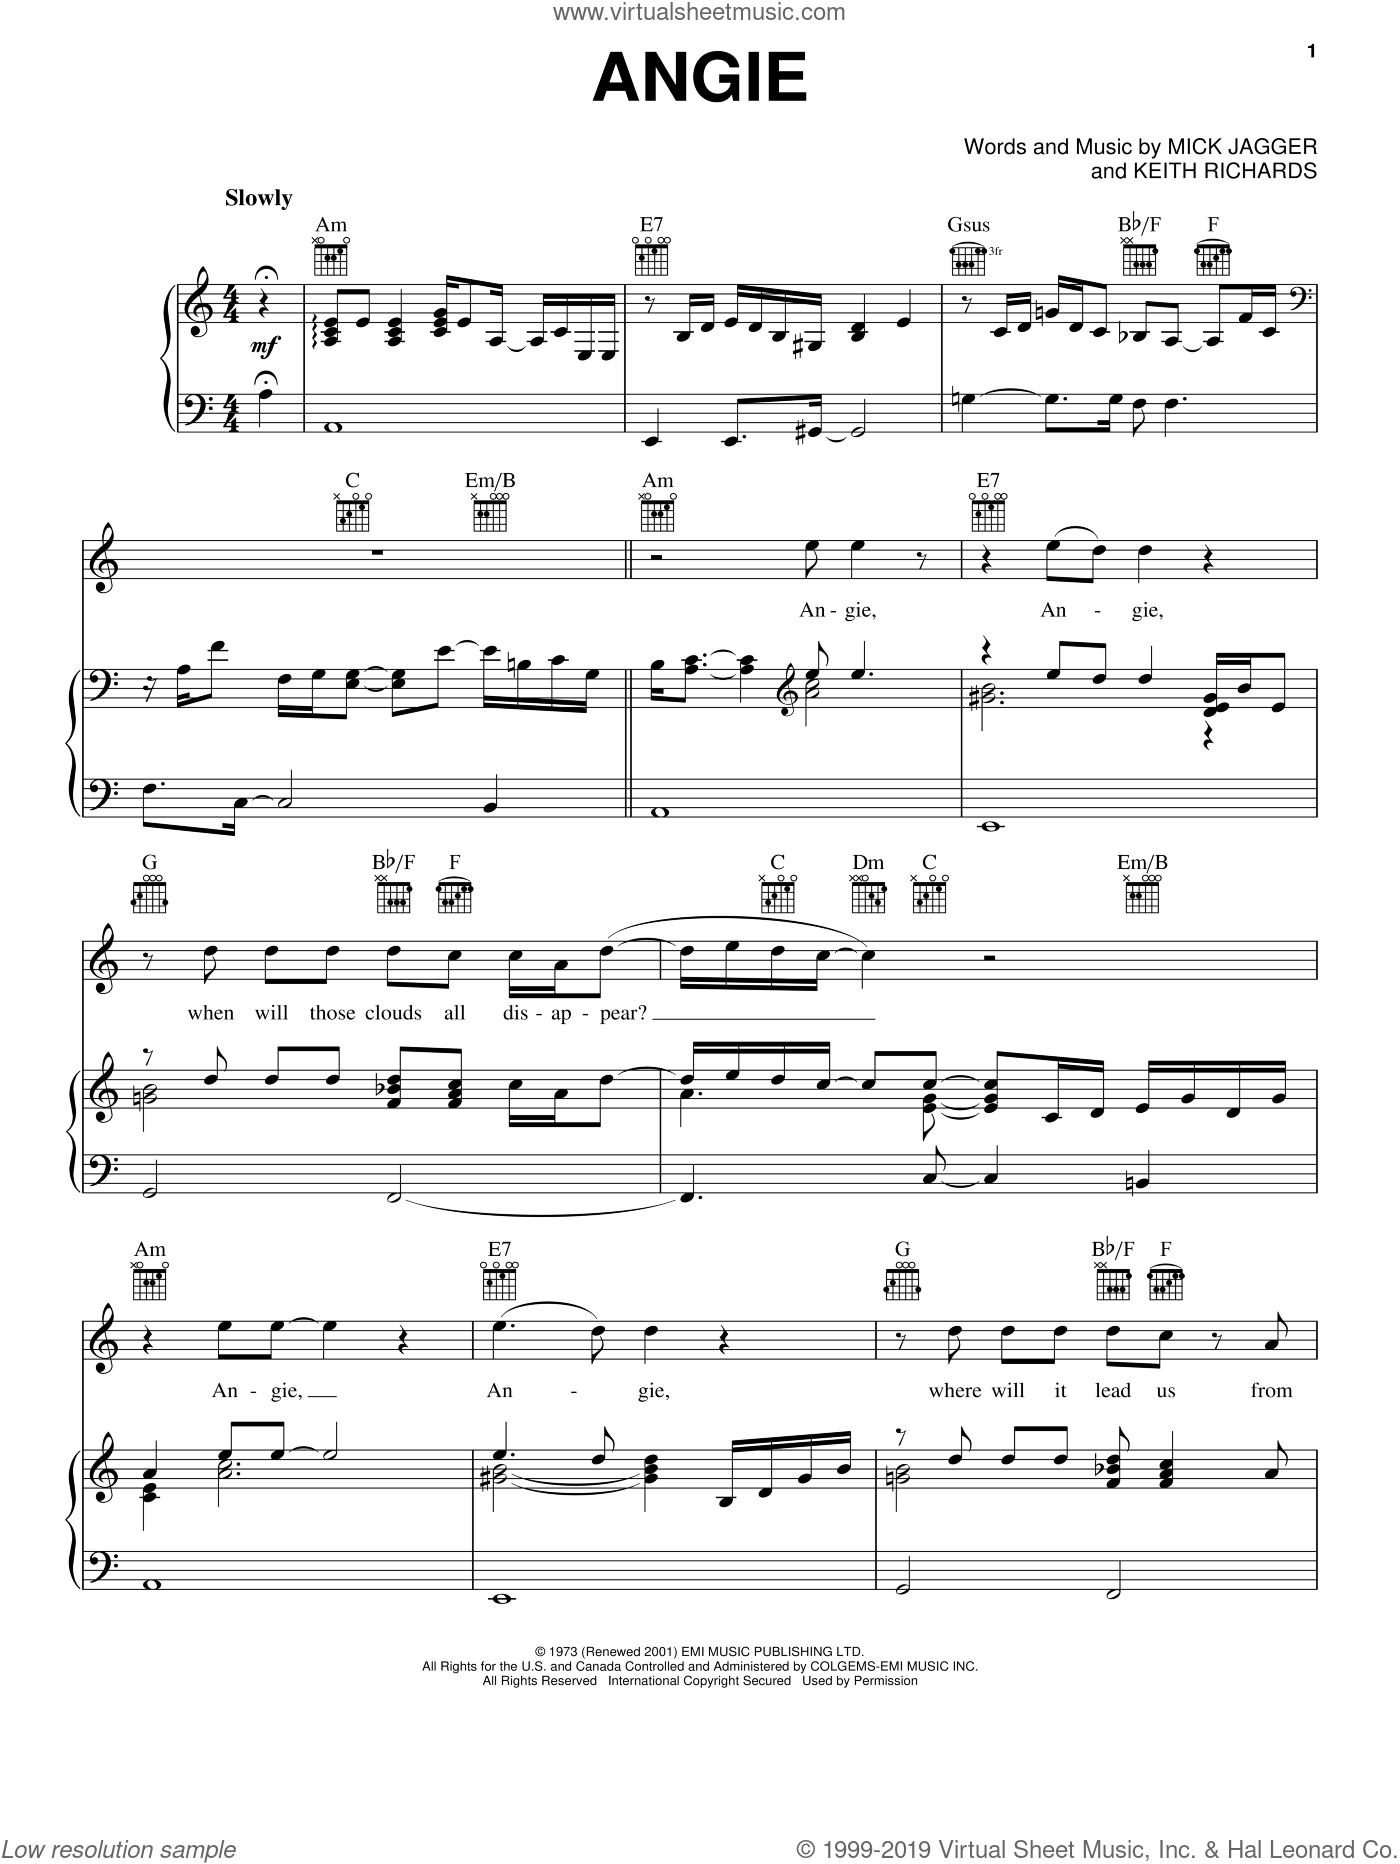 Angie sheet music for voice, piano or guitar by The Rolling Stones, Keith Richards and Mick Jagger, intermediate skill level